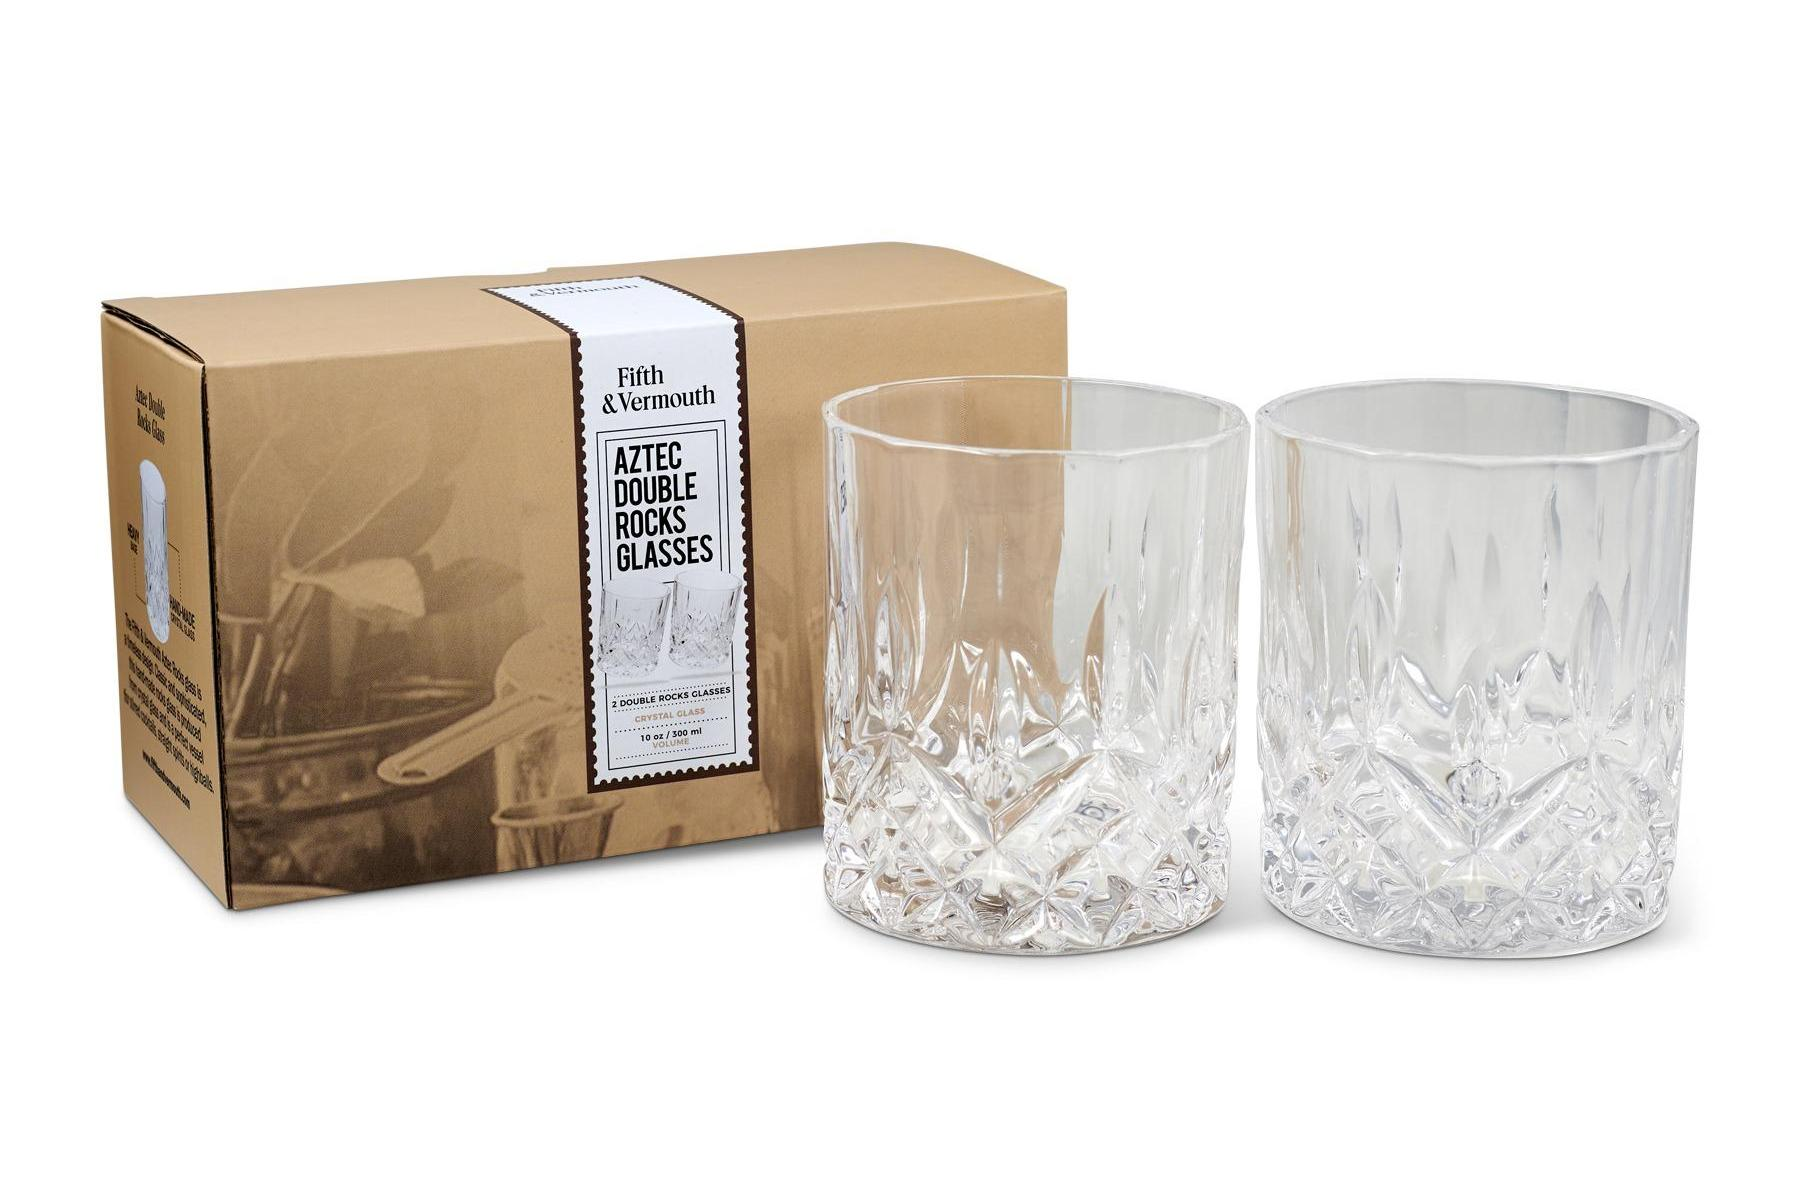 Aztec Double Rocks Glass Set 10 oz with Packaging - Fifth & Vermouth